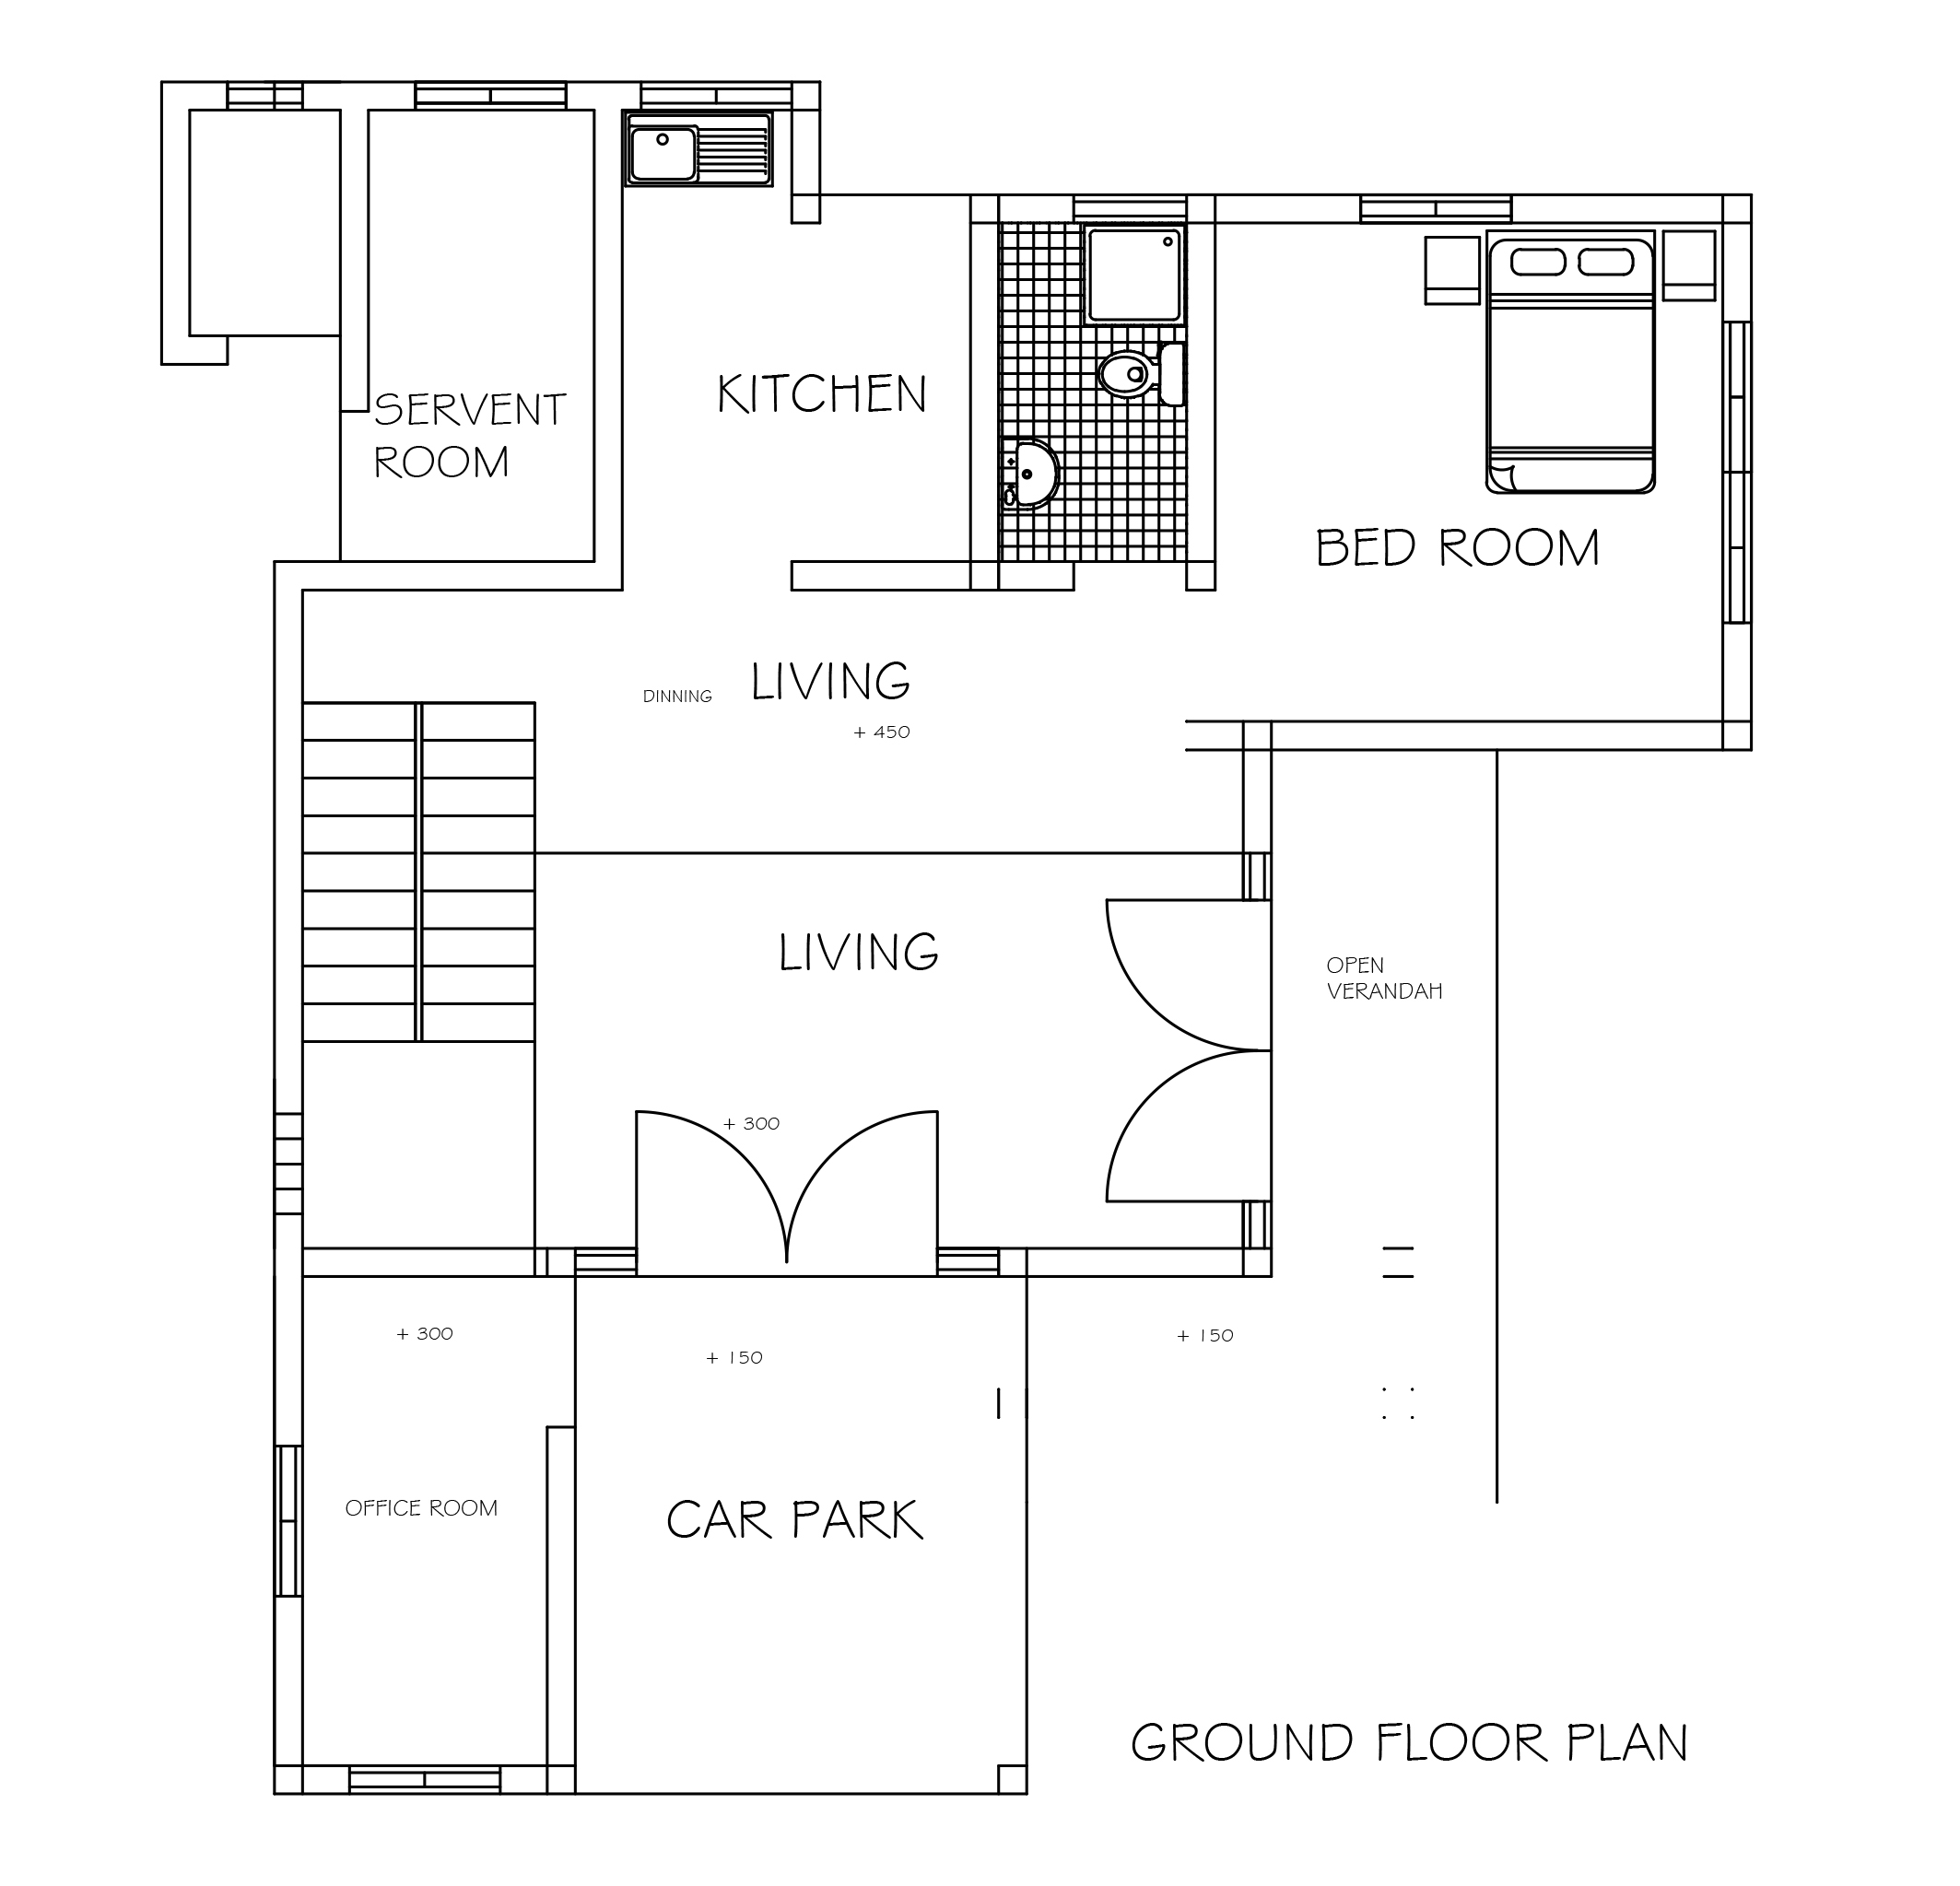 Three bedroom double story beautiful house plan dwg net for House plan cad file